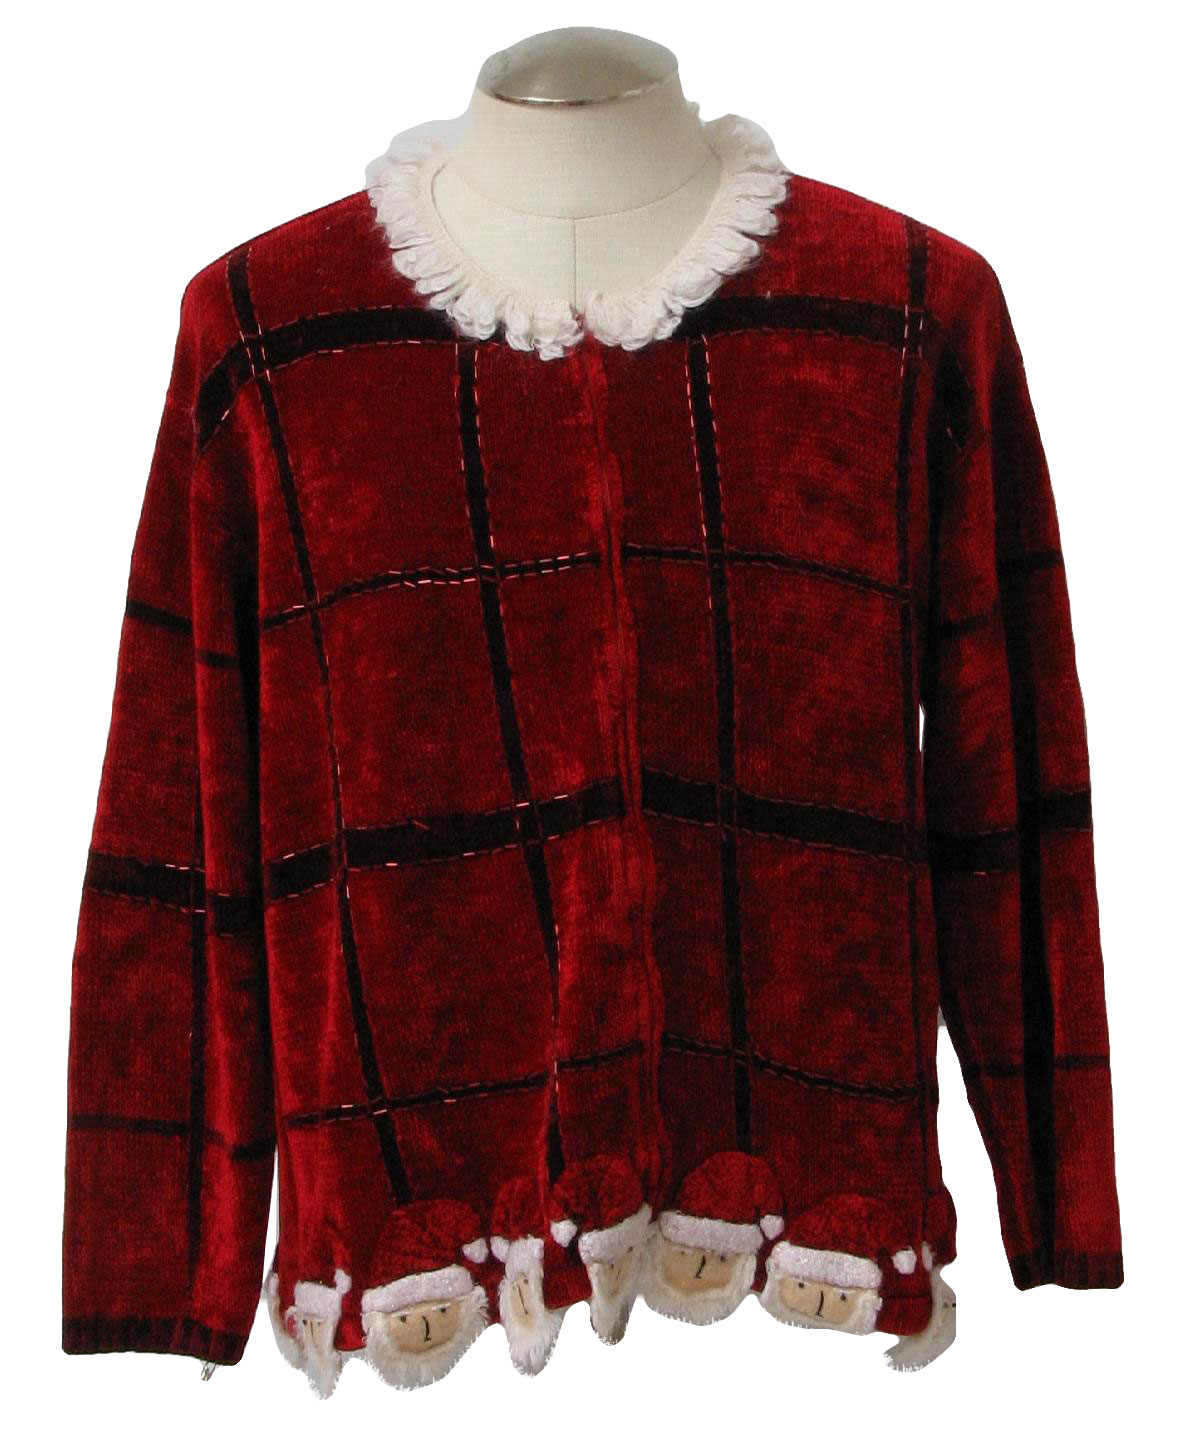 Picture Mens - Ugly Christmas Unisex Santa Suit Sweater, Red